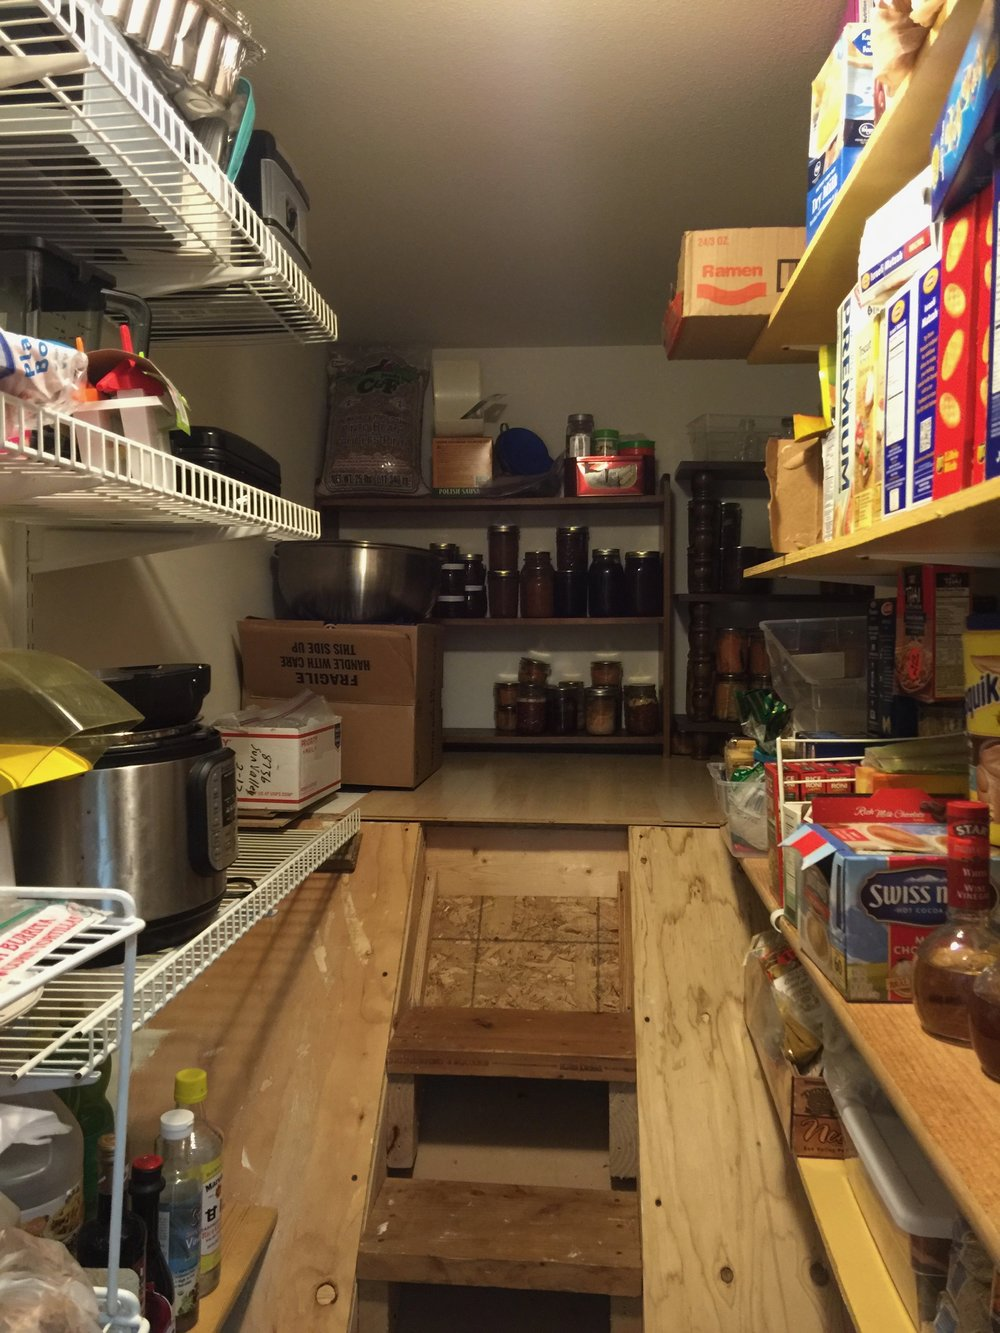 Everything is accessible now in this inventive above-the-stairs pantry.